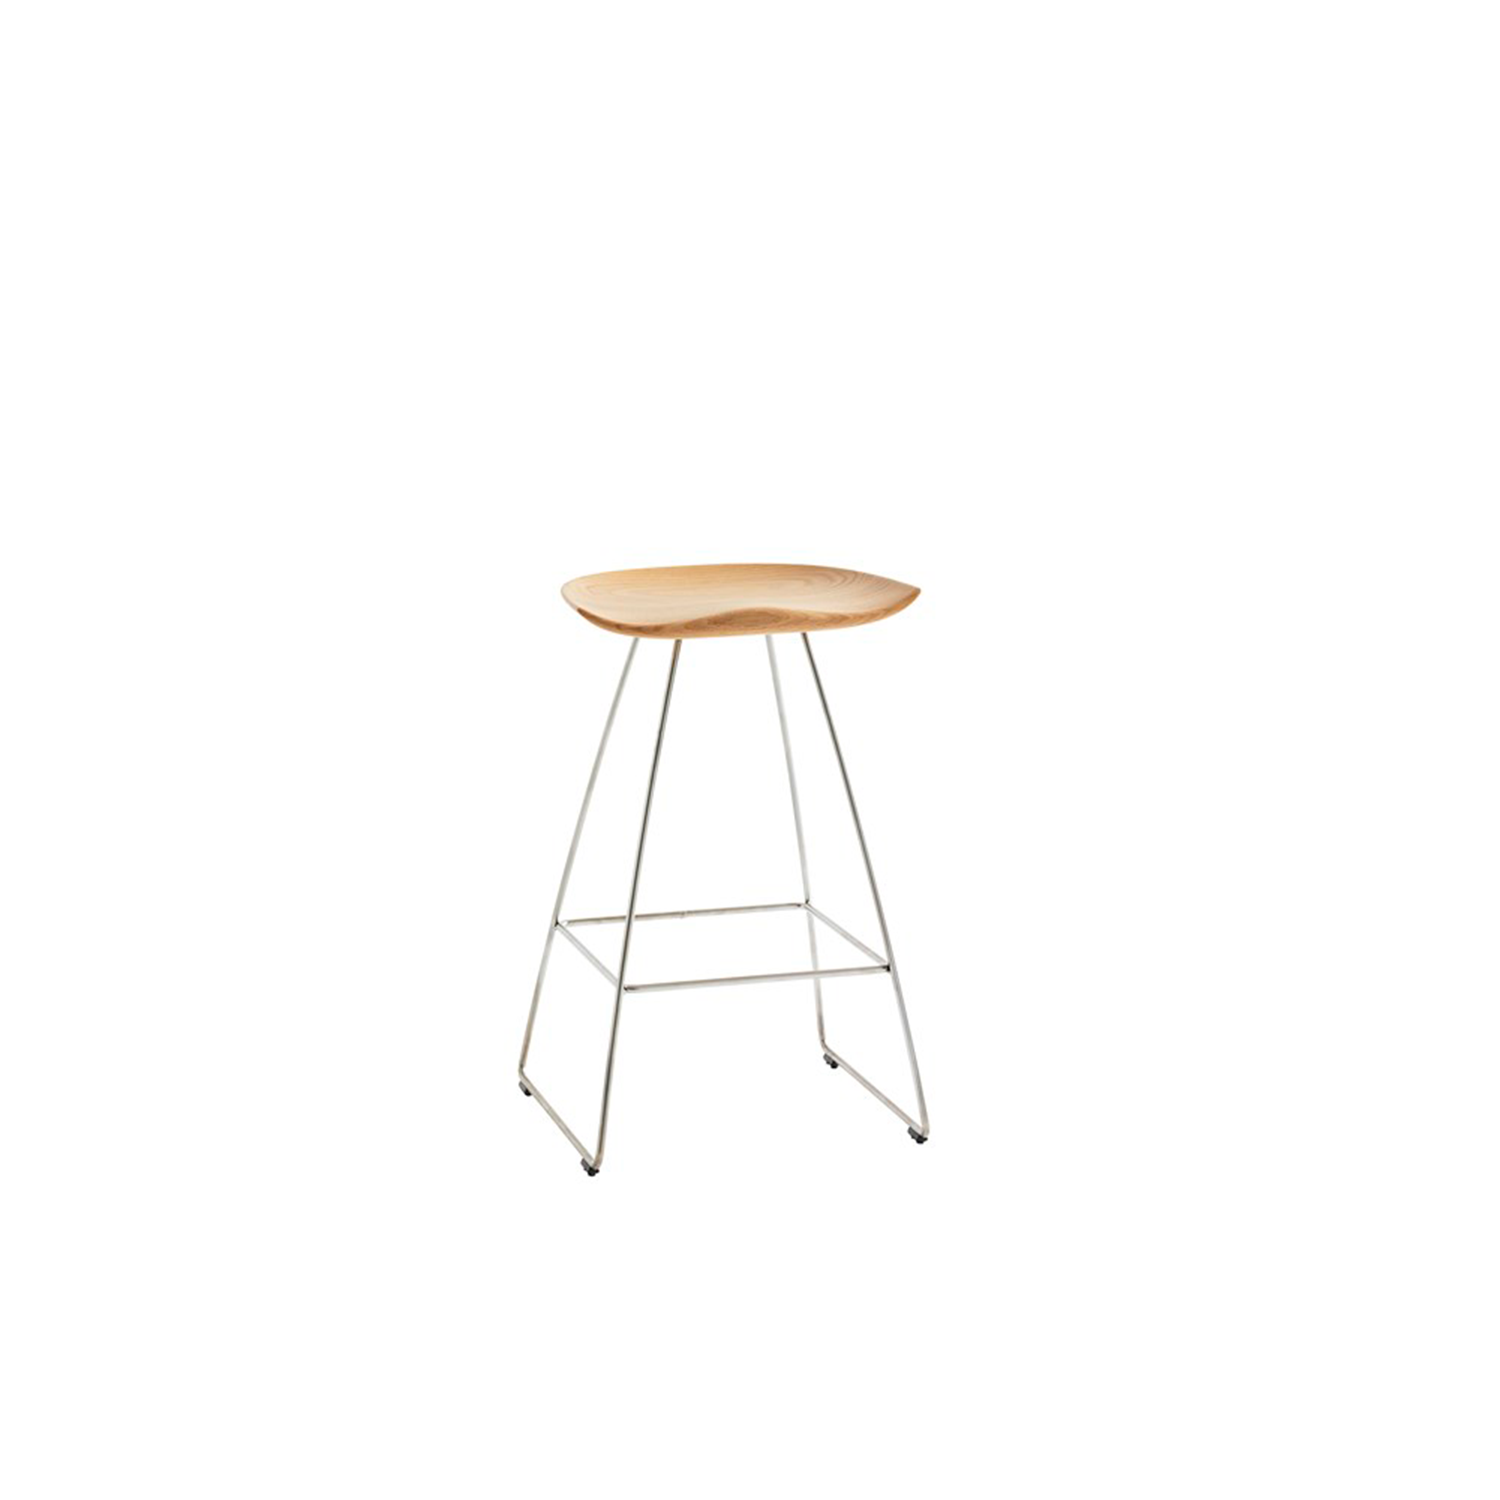 Kaz Low Barstool - The inspiration for Kaz came from a tractor seat, here refined in the form of a stool that combines a contemporary look with timeless functionality. A wooden seat on an underframe of sturdy steel rod gives the stool a minimalistic expression that draws further attention to the wooden seat.  Kaz is manufactured from a single piece of solid wood – oak, ash or finished in standard stains on ash or white-glazed oak or ash. The metal frame has a matt chrome finish, and the runners are fitted with floor protectors. The stool comes in a choice of three heights.  Please enquire for more information. | Matter of Stuff